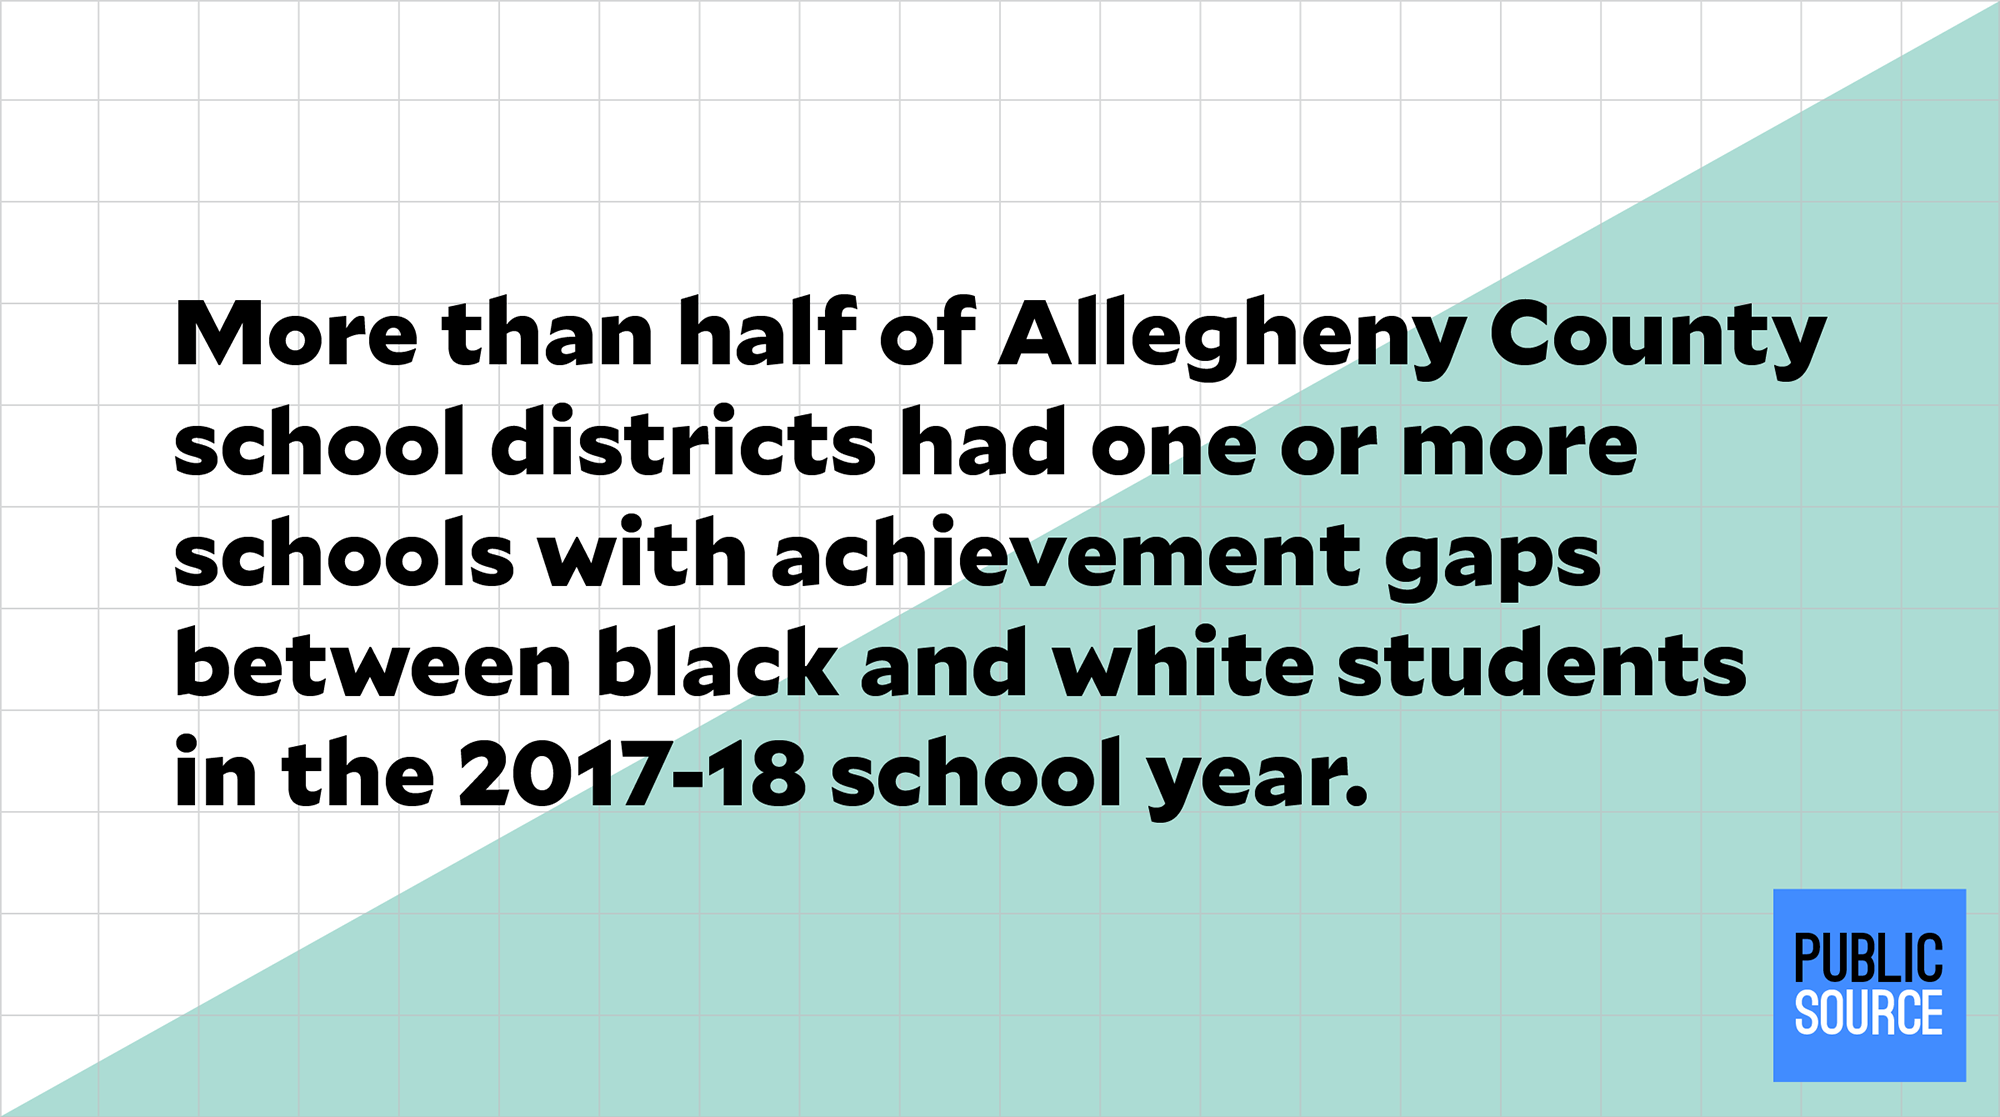 New data shows racial achievement gaps at more than half of